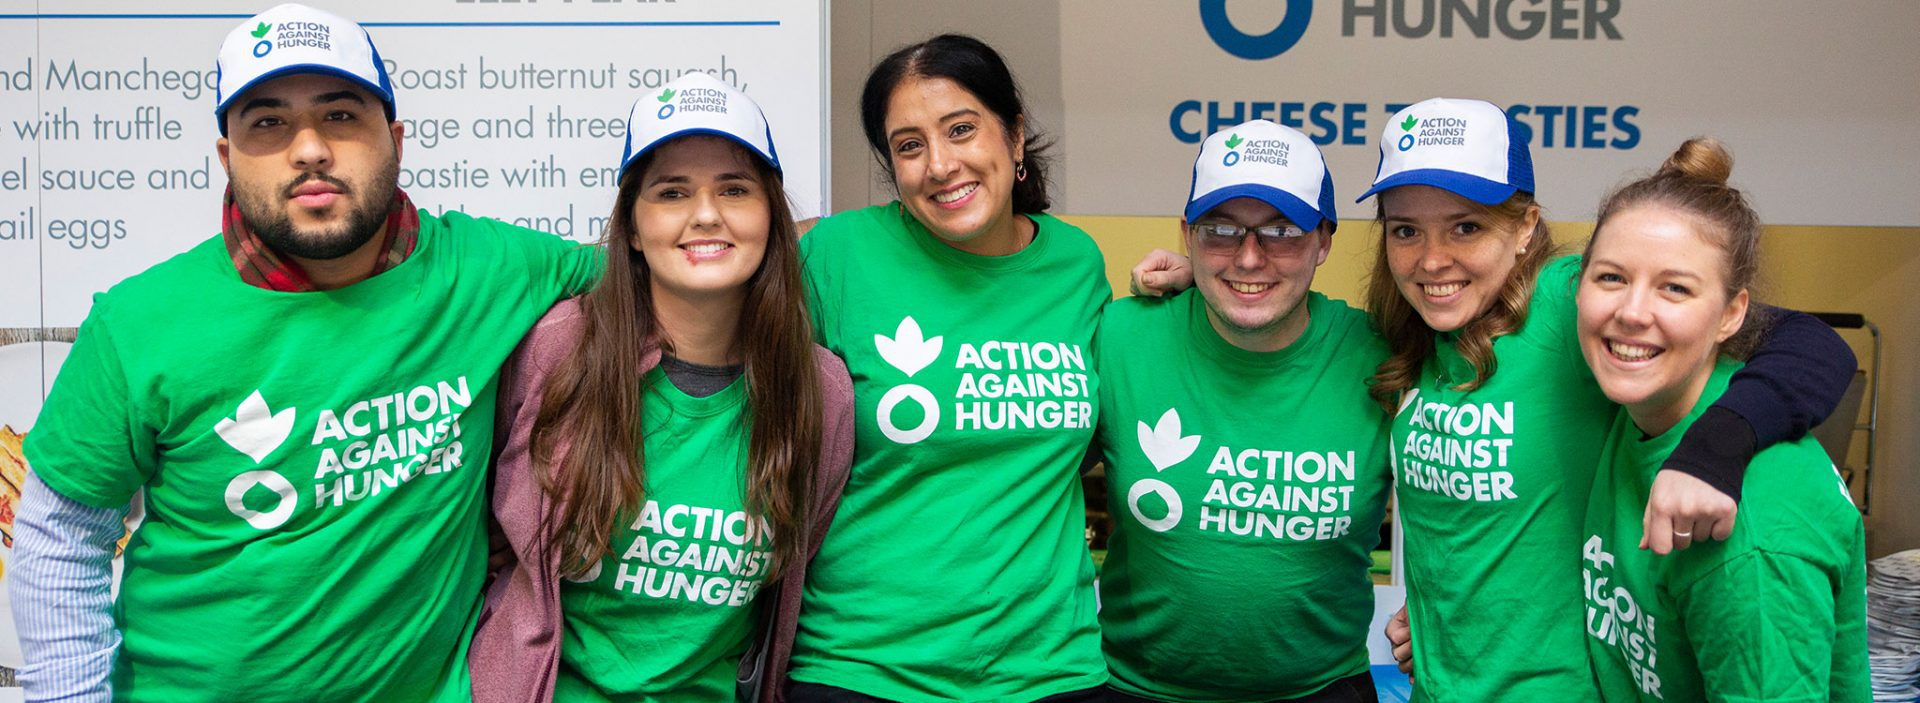 Action Against Hunger fundraisers at Taste of London event